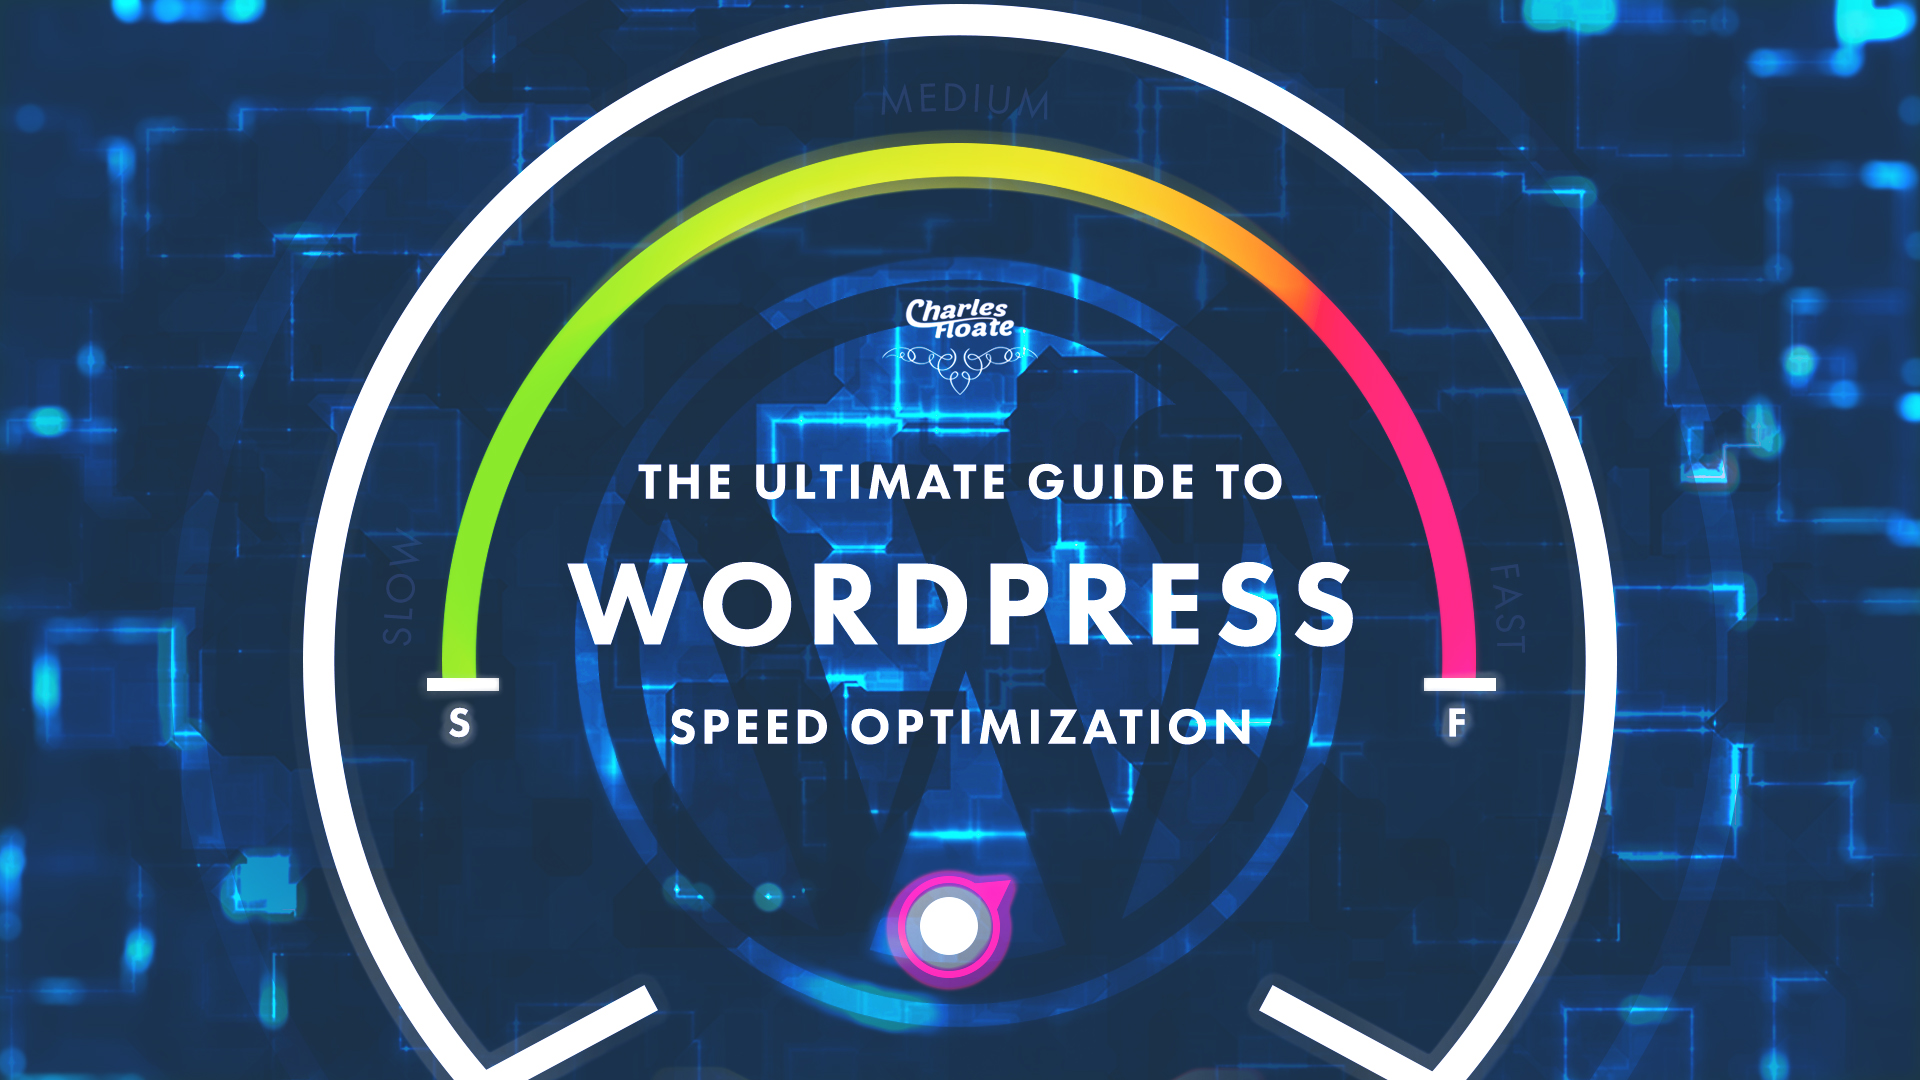 The Ultimate Guide To WordPress Speed Optimization - Charles